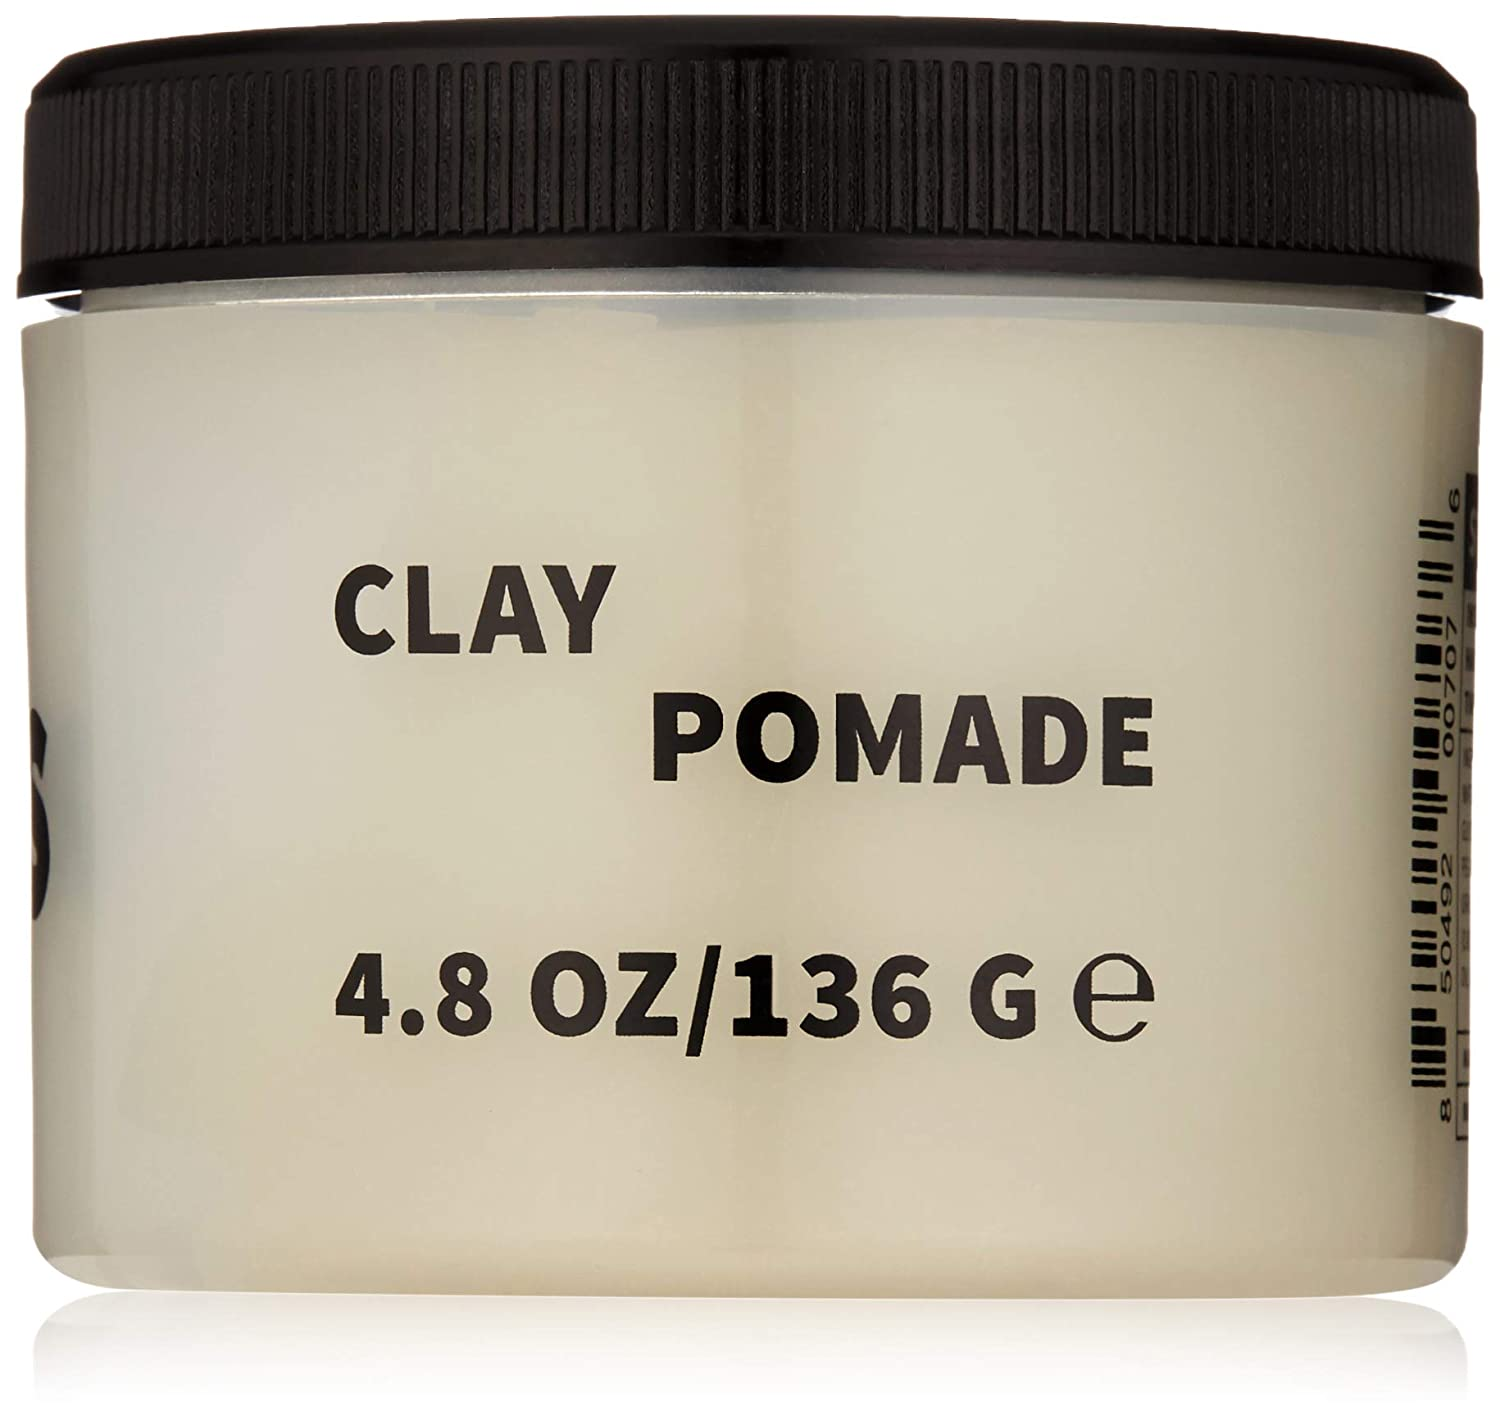 RUDY's Clay Pomade for Fine to Medium Hair, Strong Hold, Matte Finish, 4.8 oz